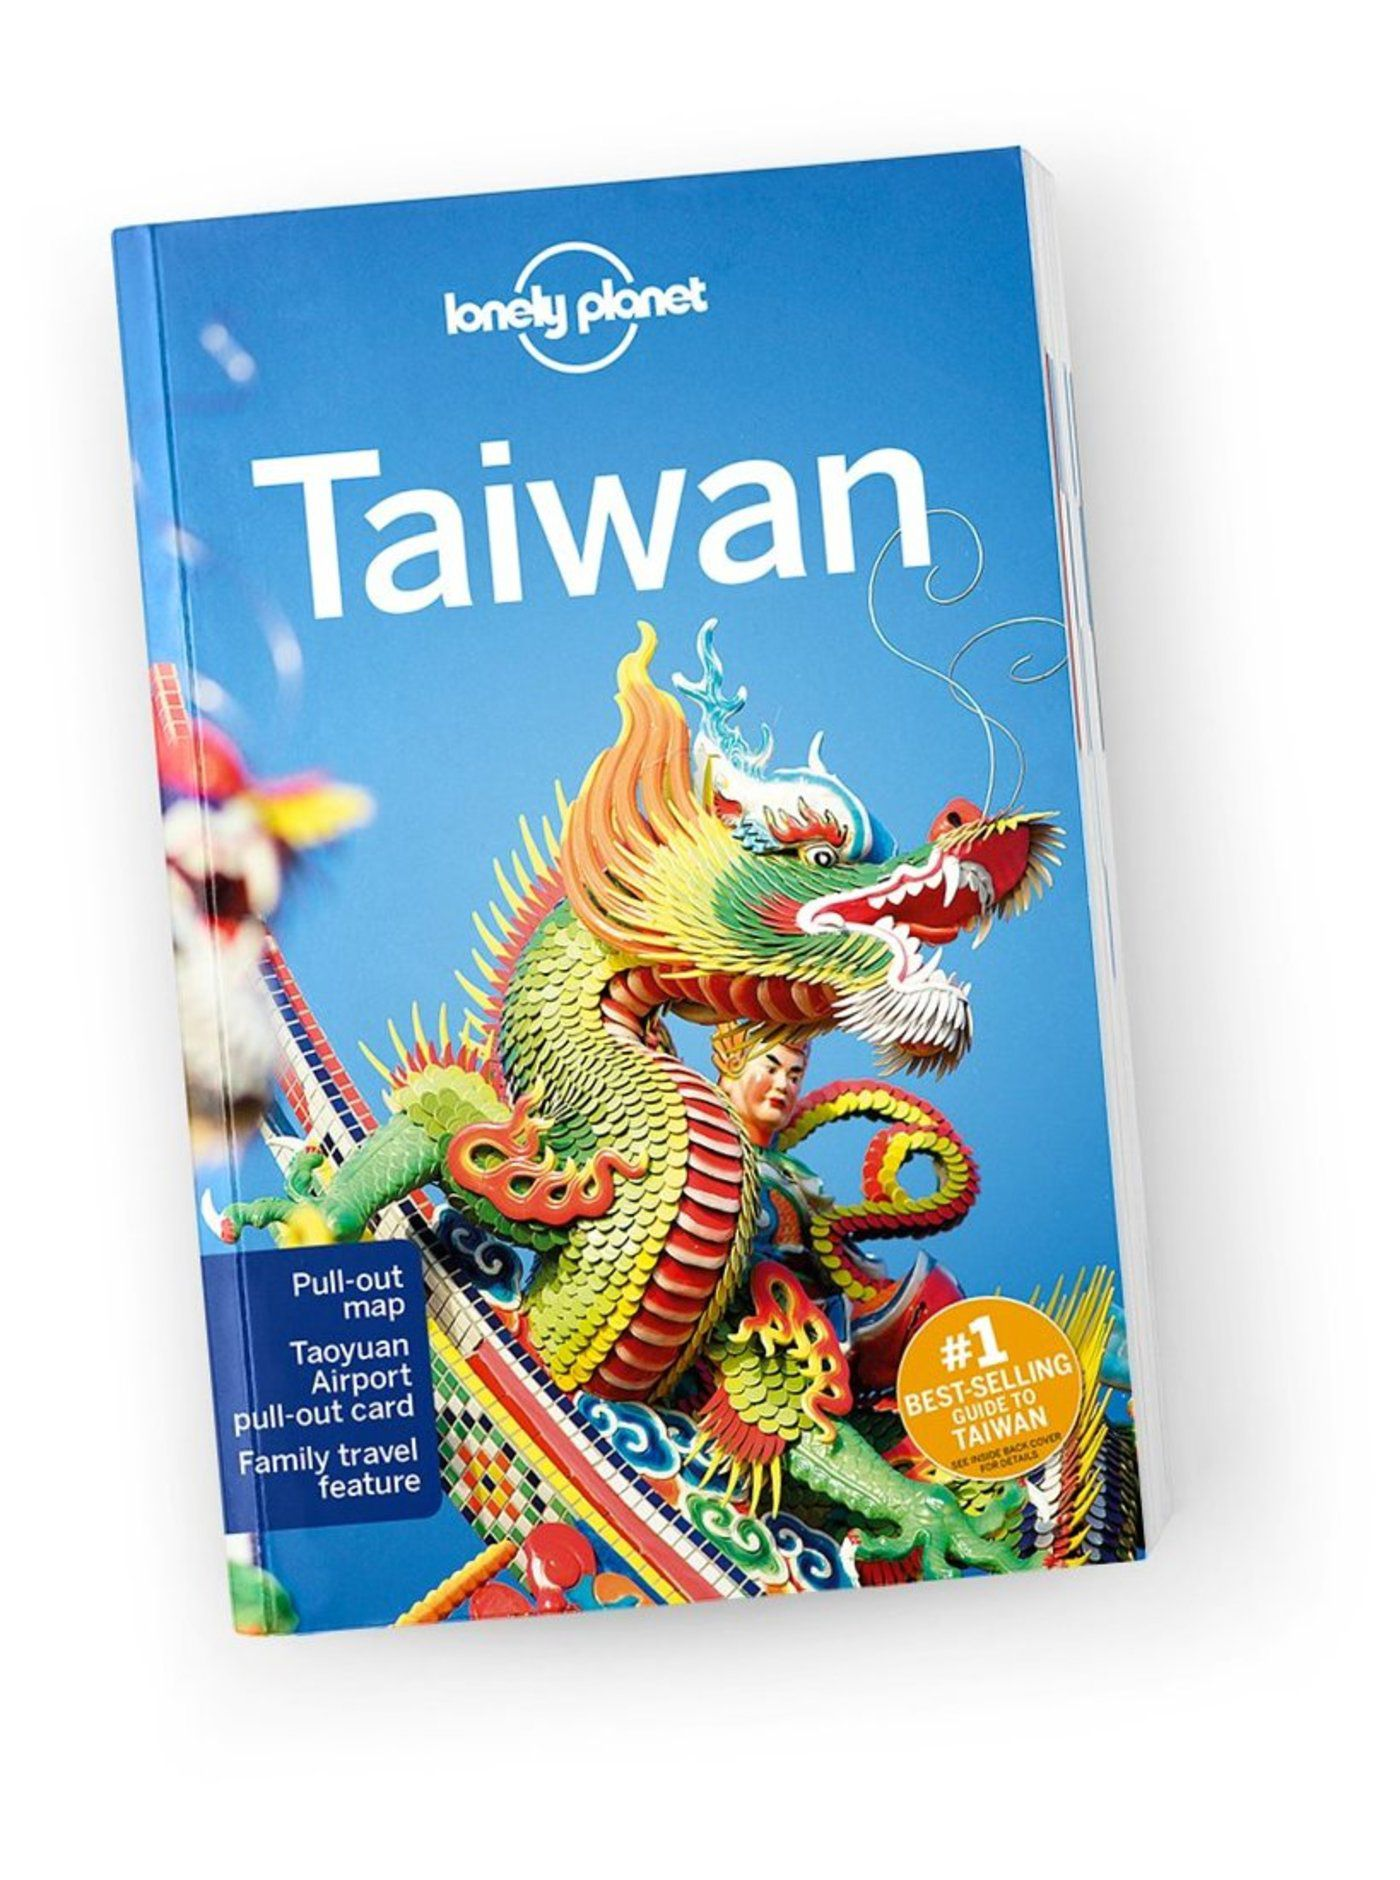 Taiwan travel guide - 11th edition